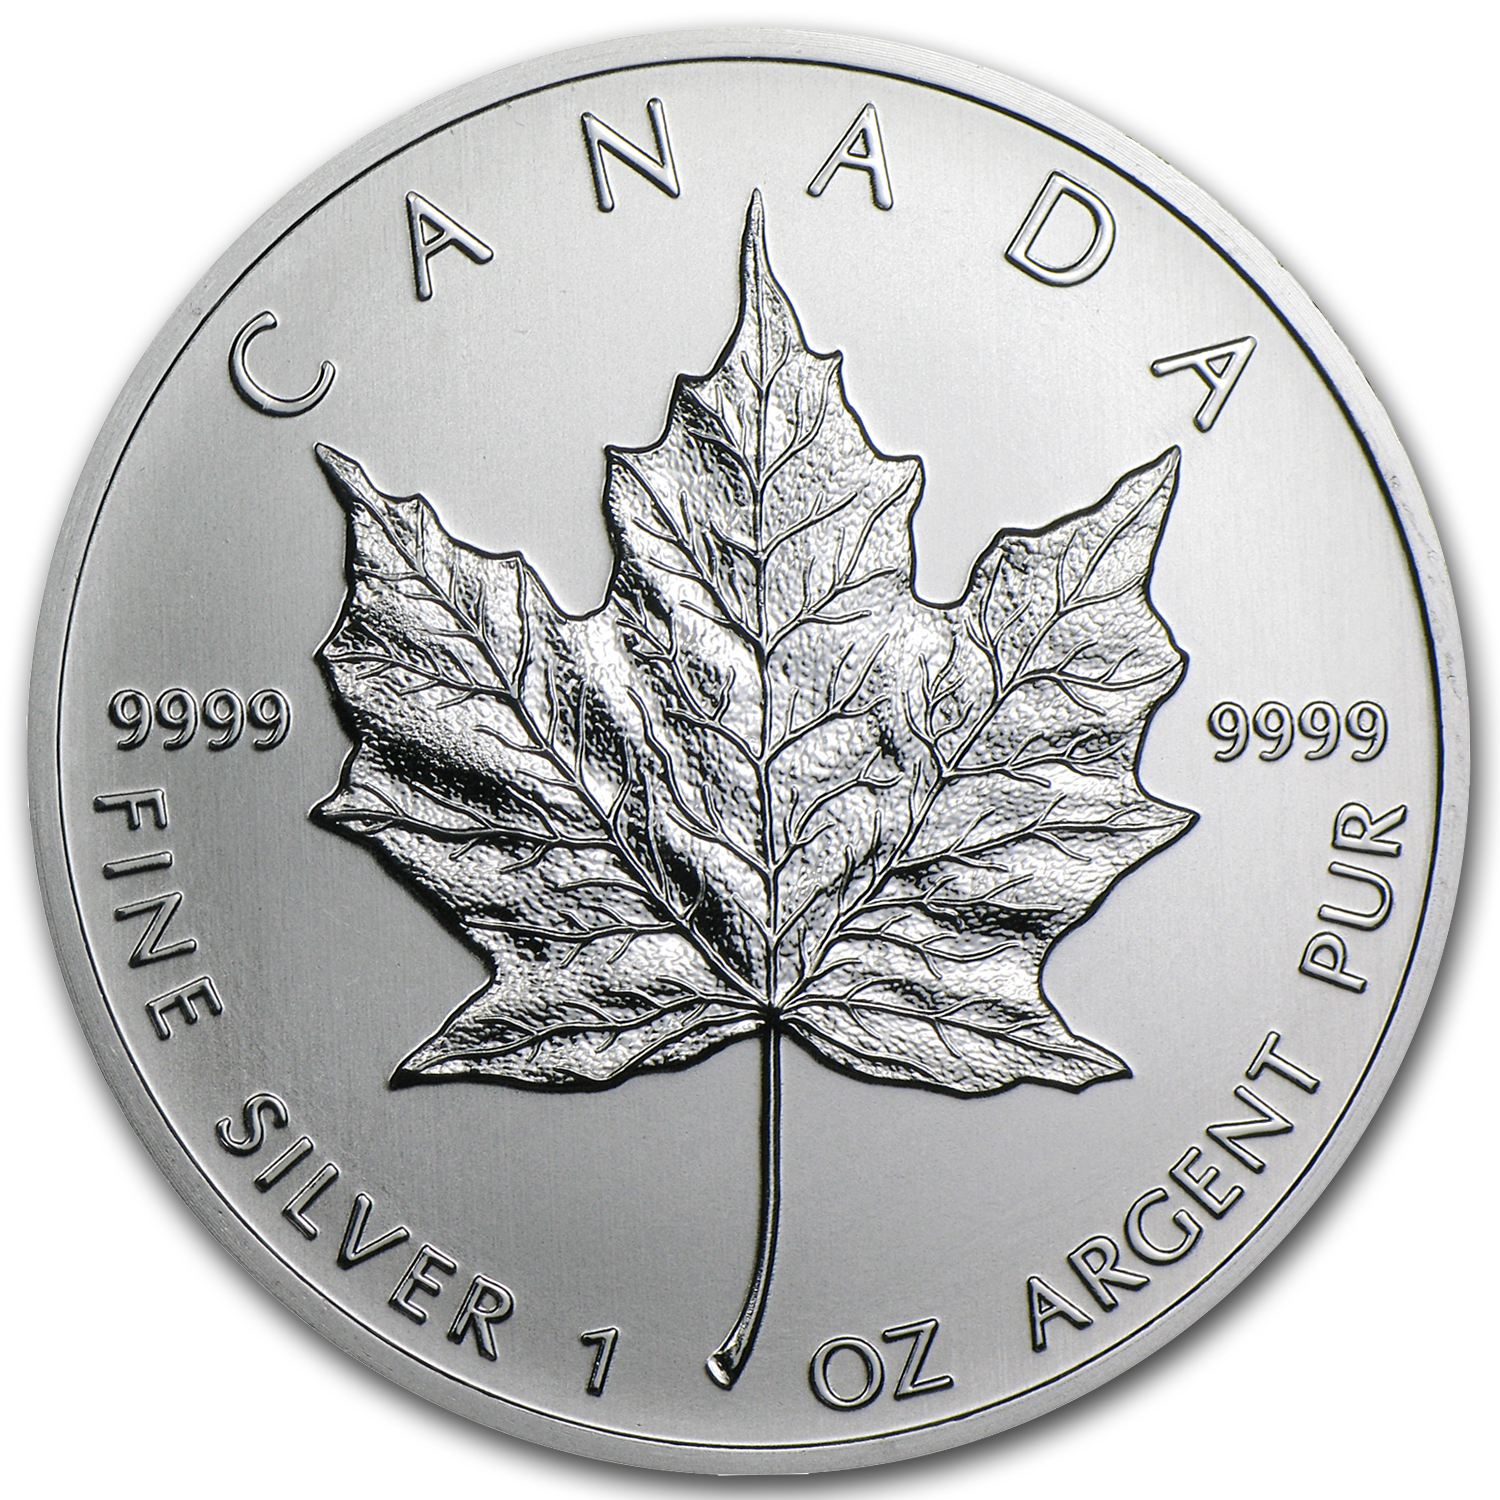 2013 1 oz Silver Canadian Maple Leaf BU